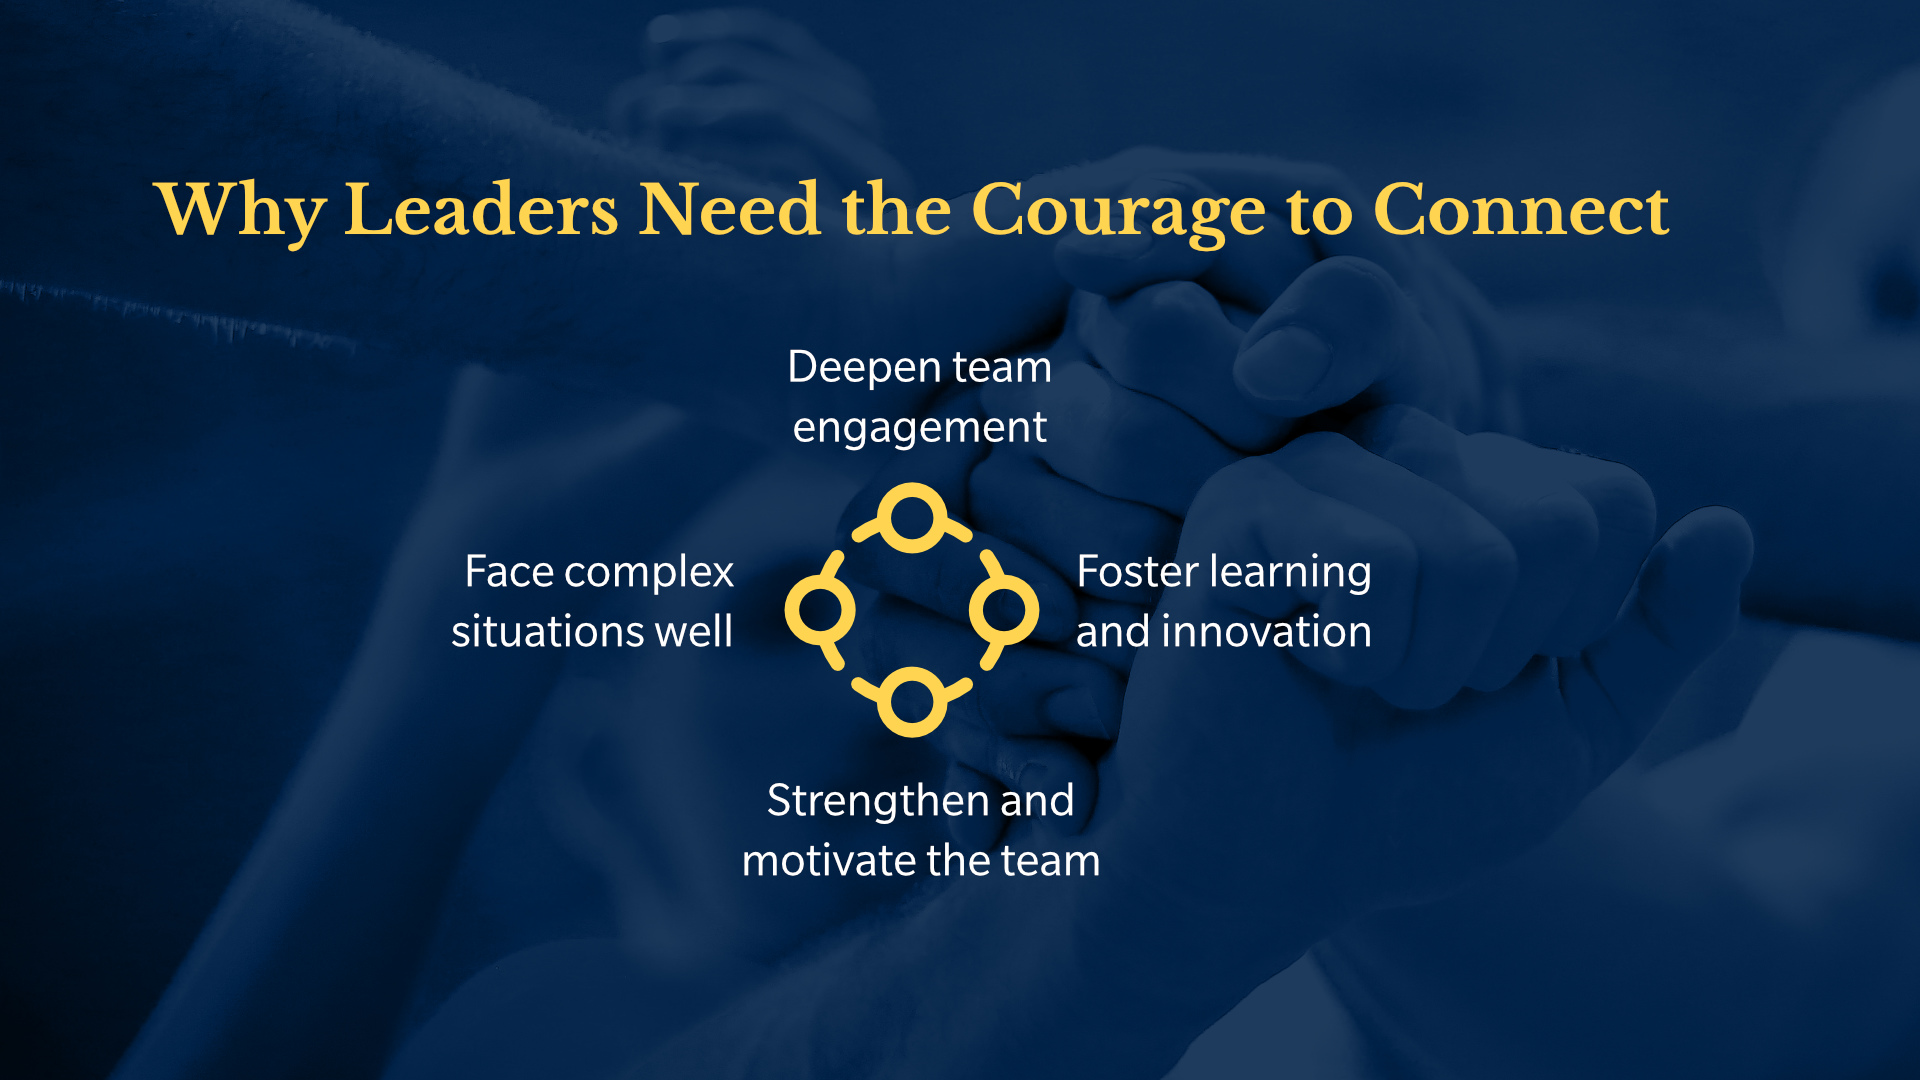 Courage to Connect Blog Image 2